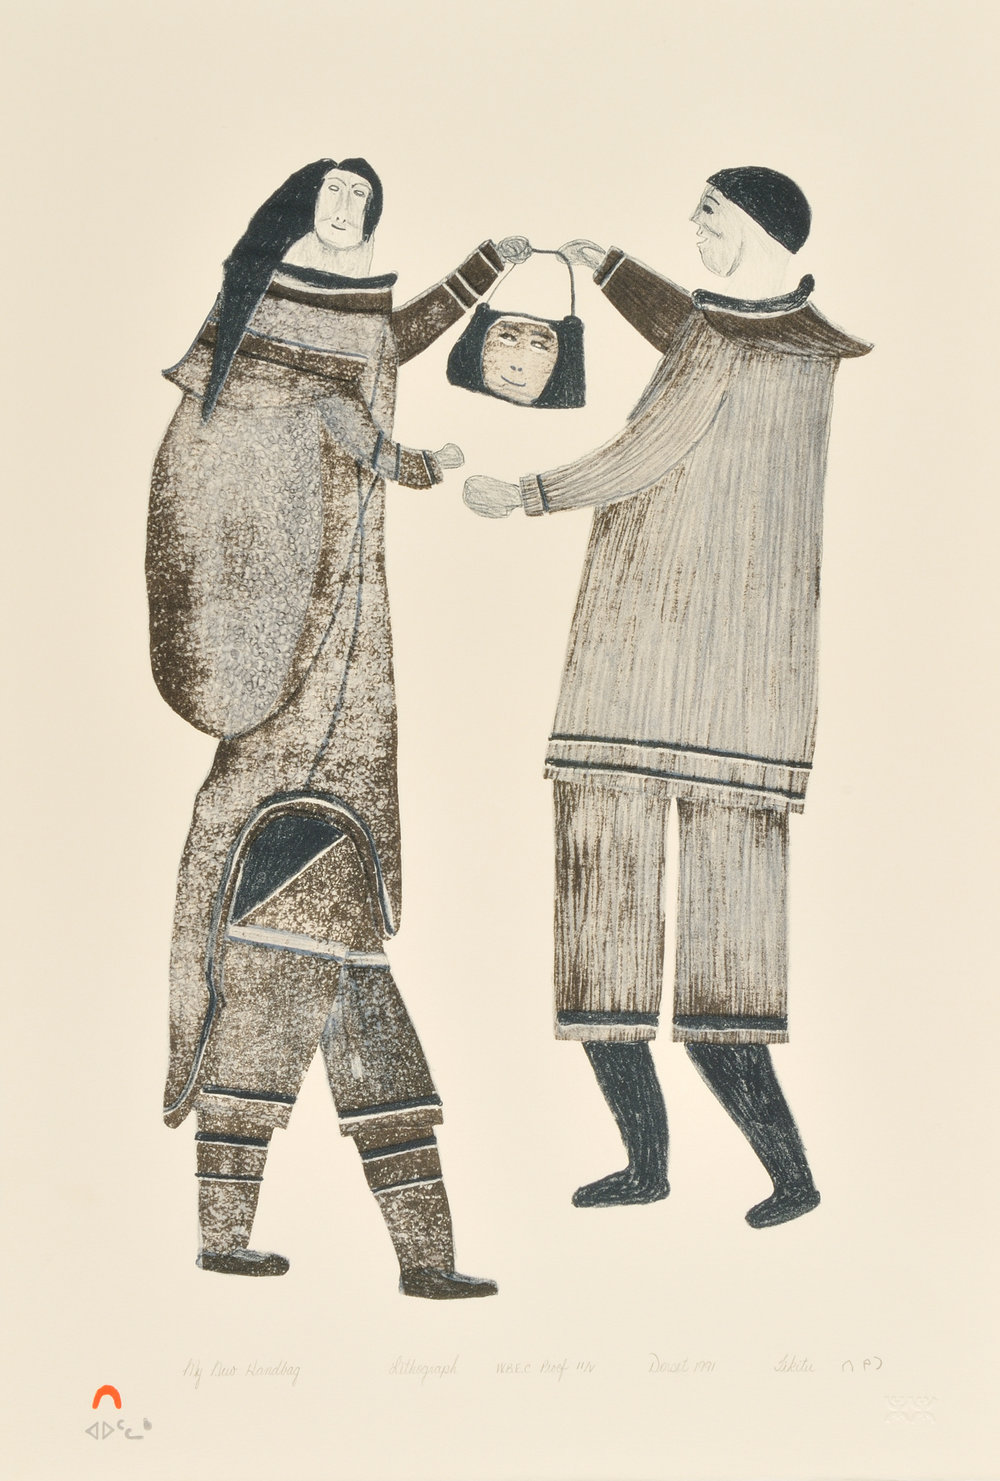 Tikitu Qinnuayuak MY NEW HANDBAG Lithograph   1991 56.7 x 38.1 cm $300.00 CDN Released in the 1991 collection Dorset ID#: 91-32